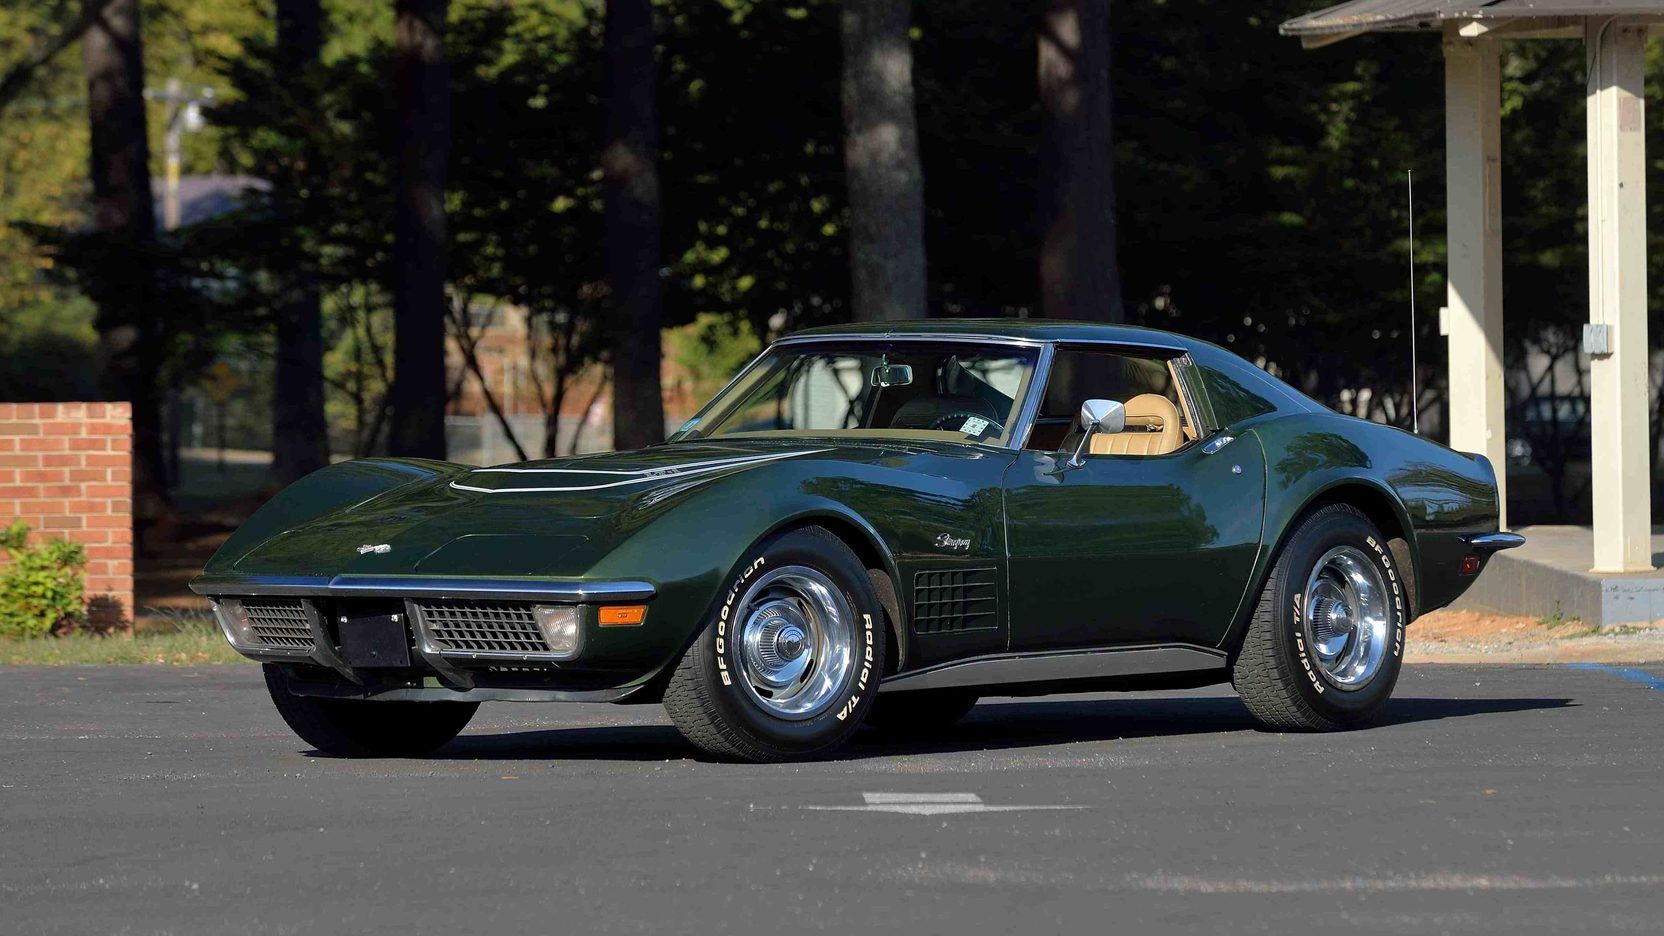 1970 Chevrolet Corvette Lt1 Coupe 350 370hp 4bbl Sbc V8 4 On The Floor 4 11 Posi Chevrolet Corvette Corvette Chevrolet